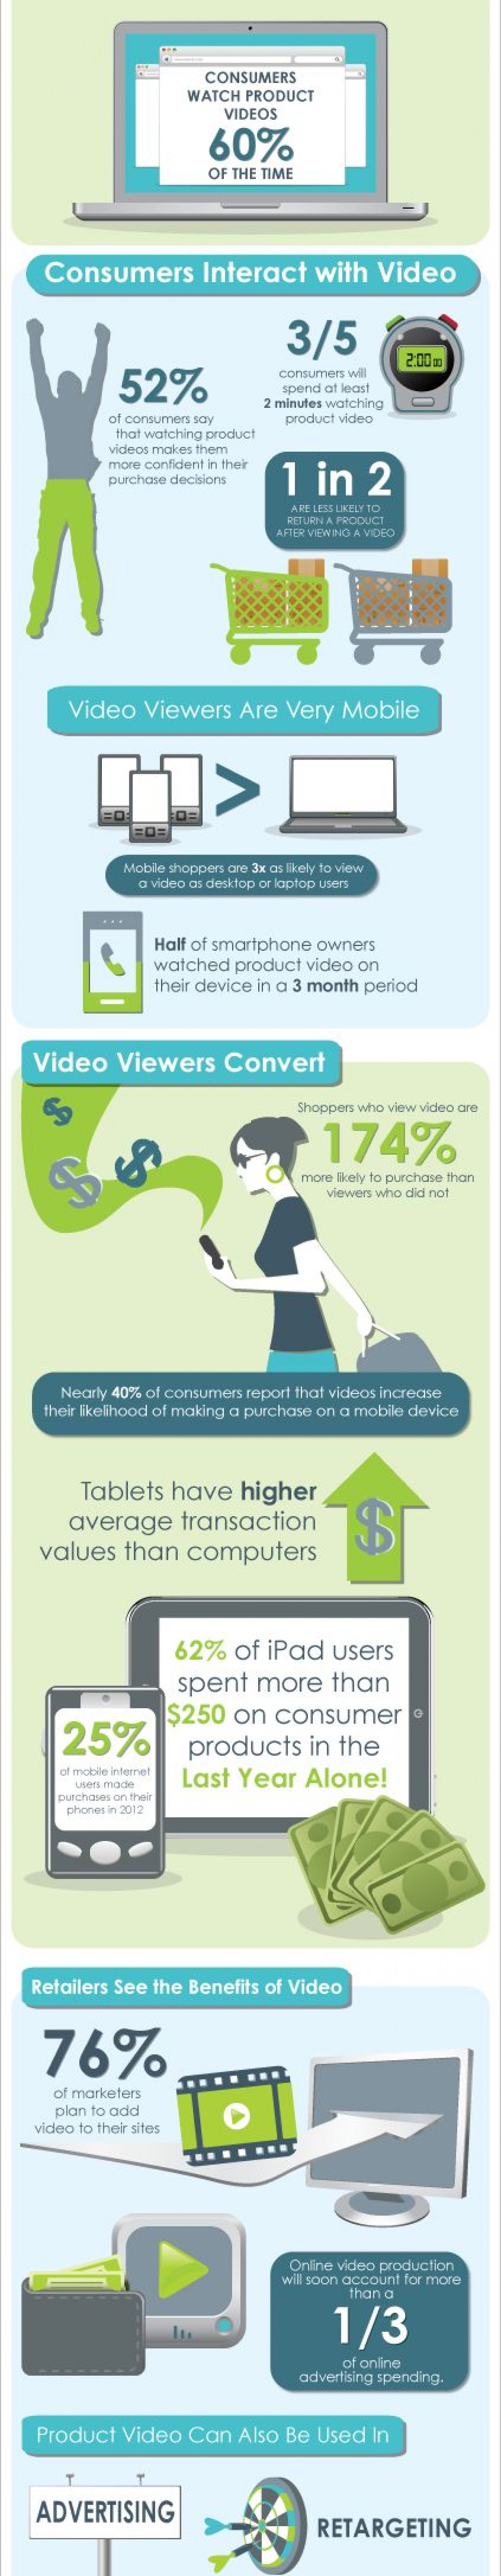 Benefits of Video Streaming for Consumers Infographic